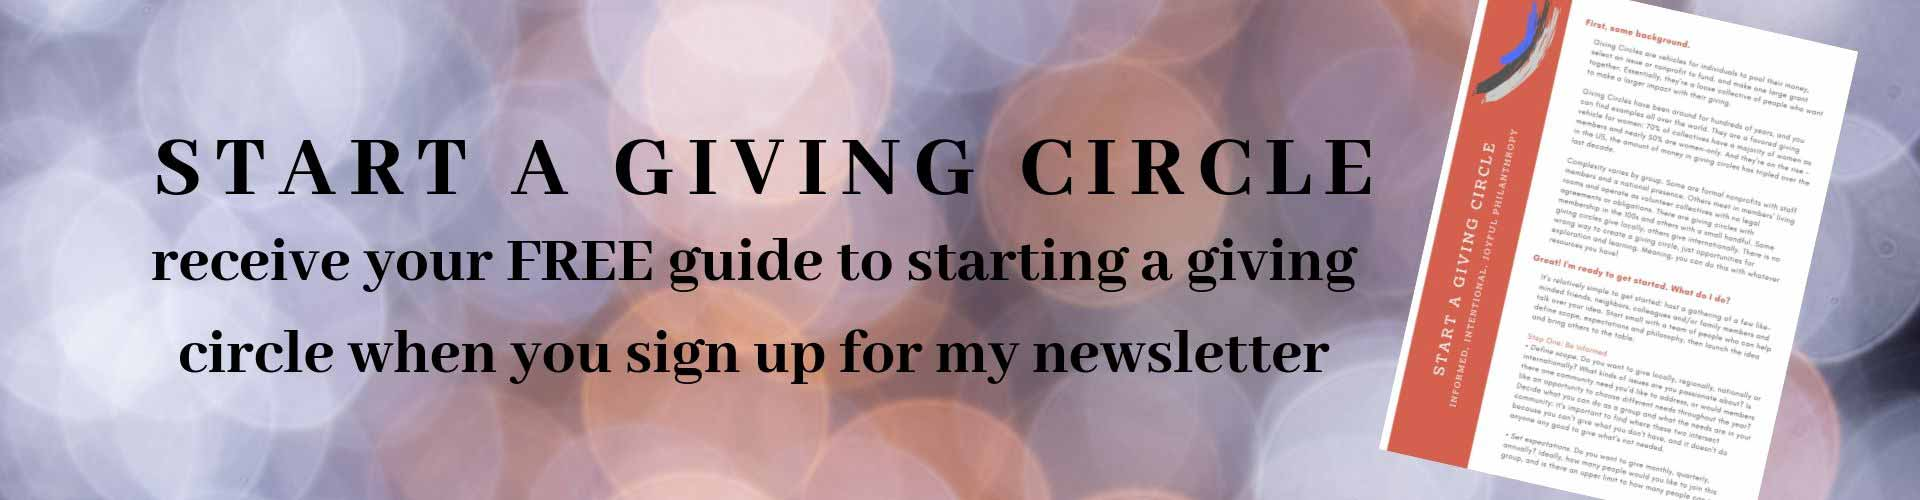 Start a giving circle